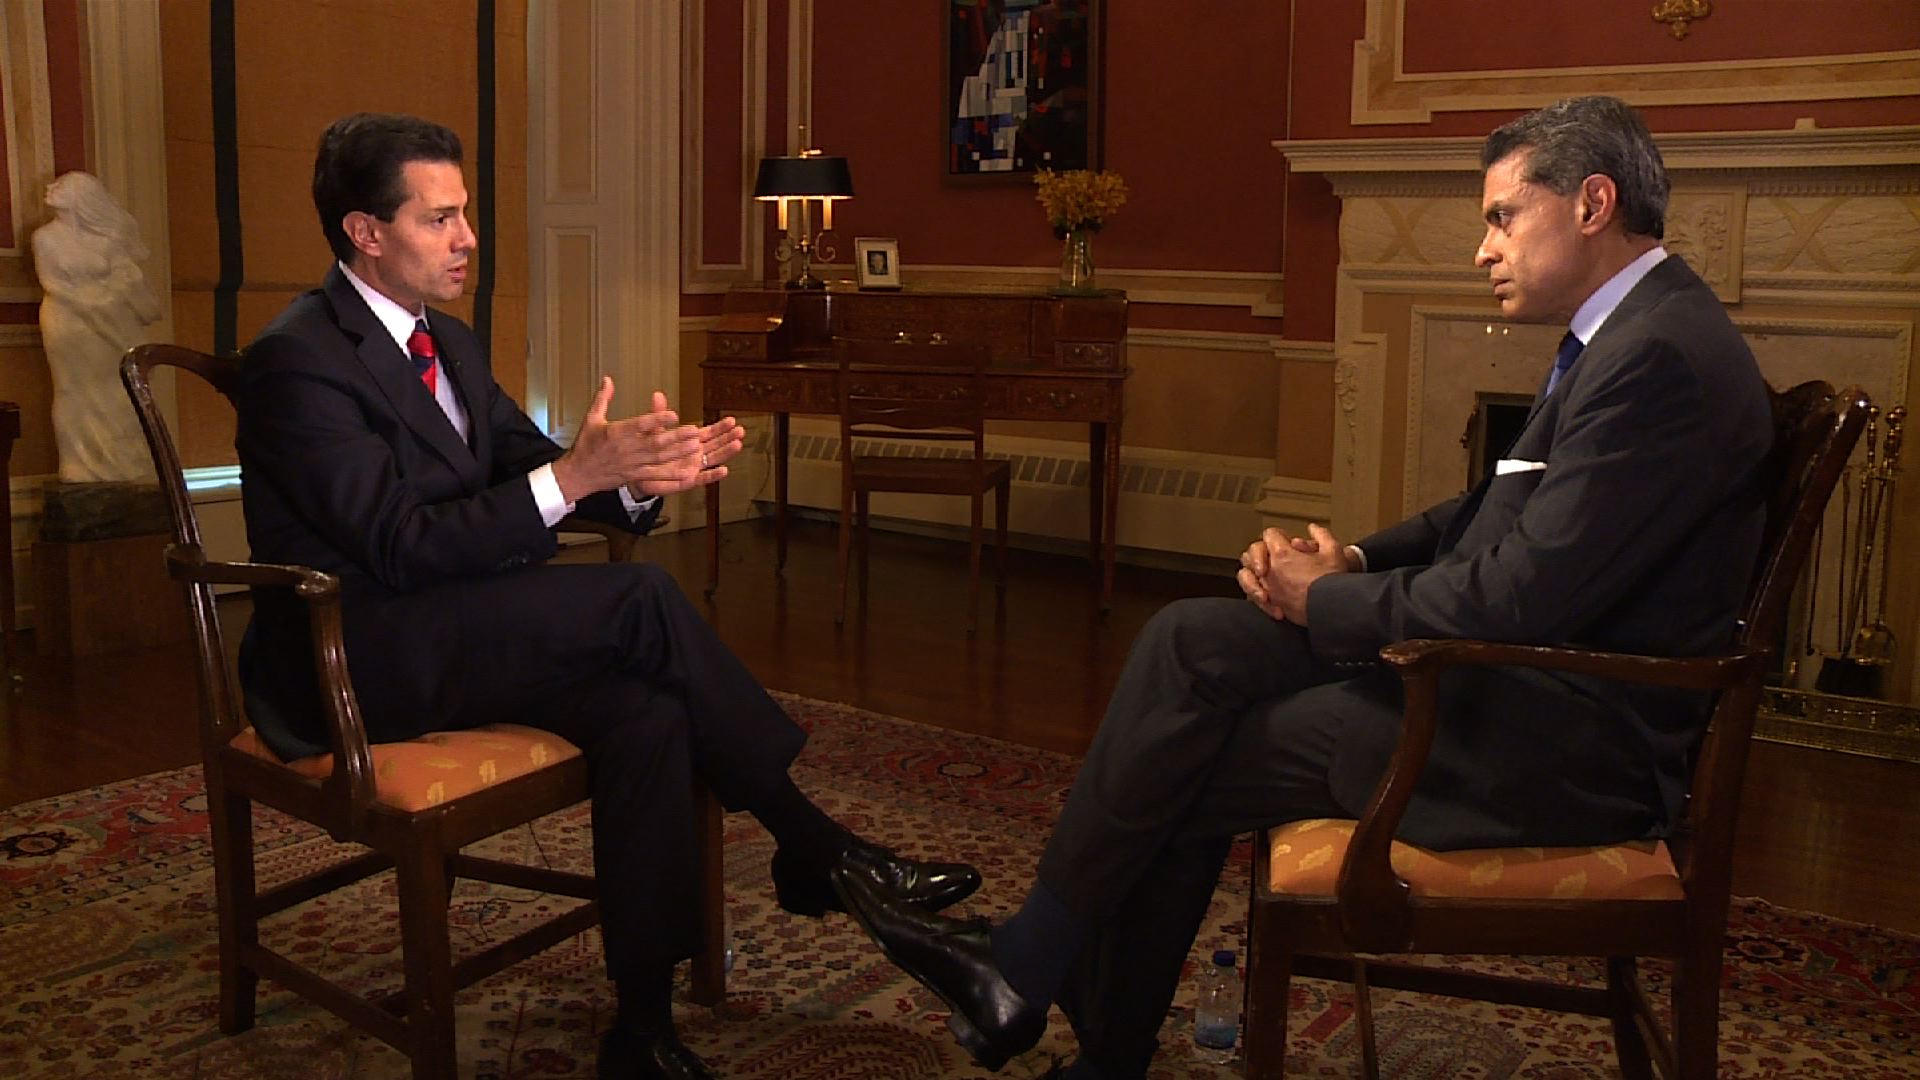 Mexican President Enrique Peña Nieto interviewed by CNN's Fareed Zakaria for Sunday EXCLUSIVE on July 10